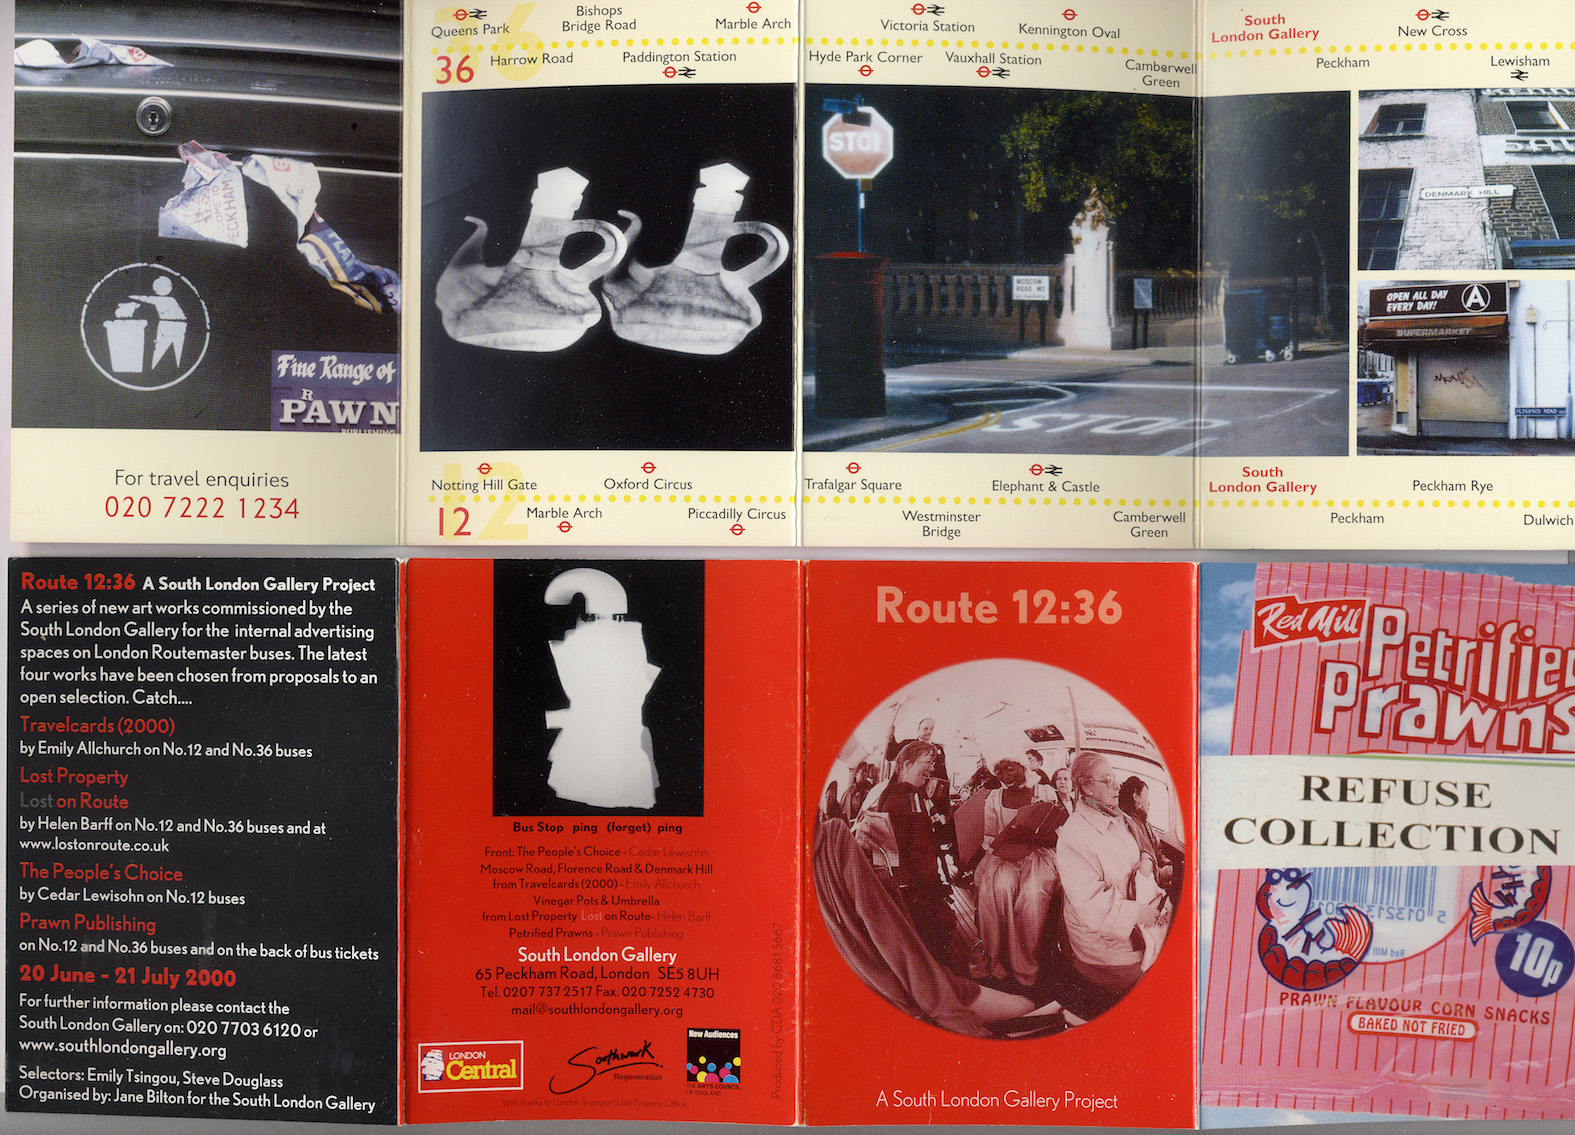 07 South London Gallery information leaflet, Route 12�36, 2000